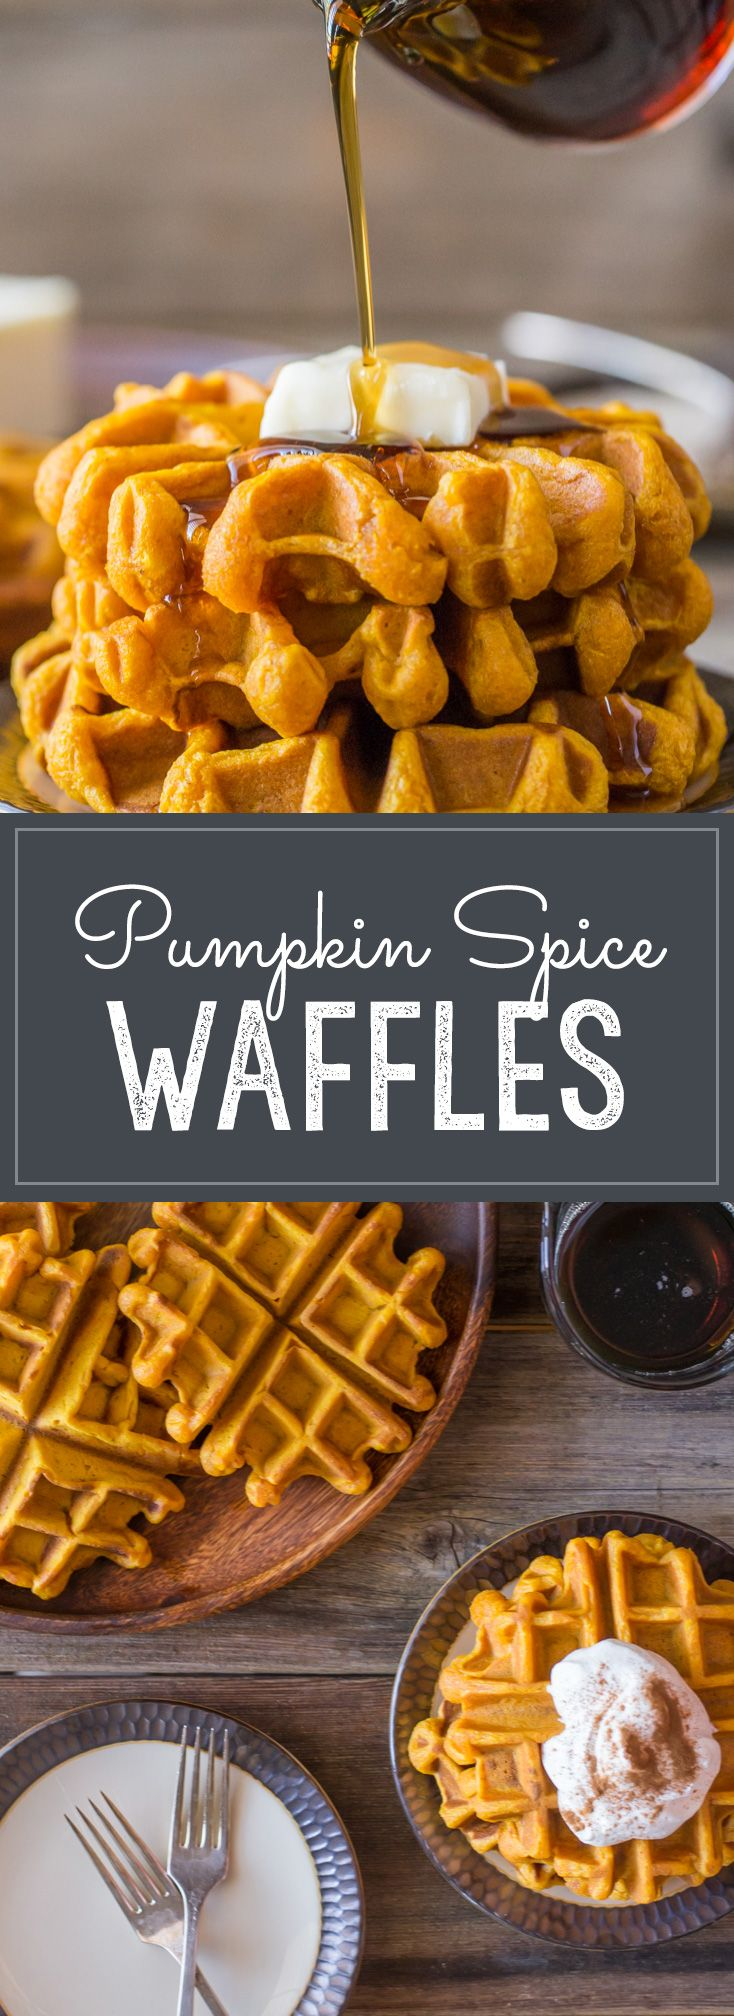 Made with pure pumpkin puree and coconut oil, these waffles are moist, fluffy and ready for maple syrup -   24 sweet pumpkin recipes ideas